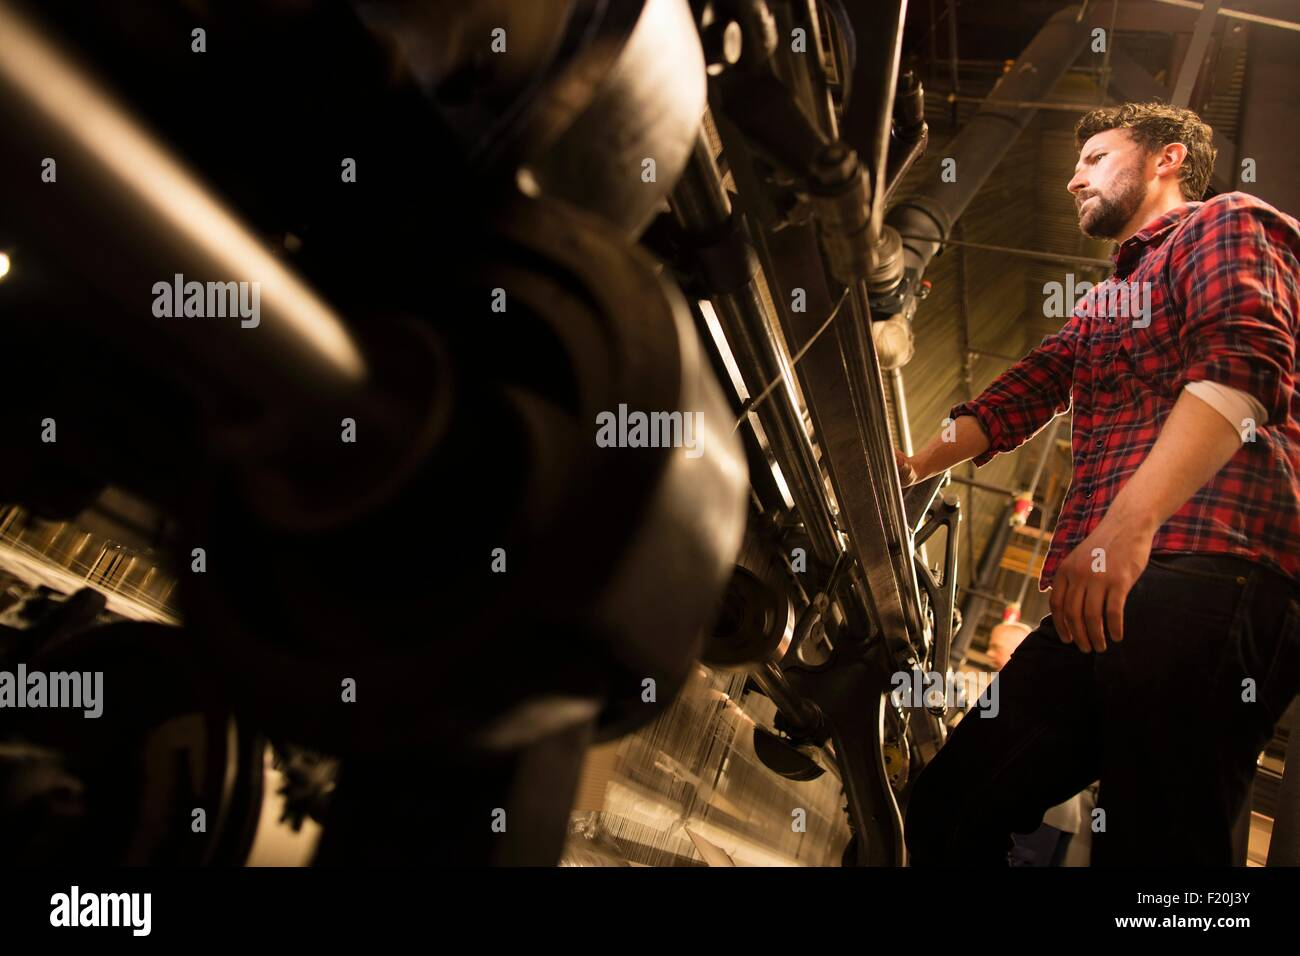 Low angle view of male weaver using old weaving machine in textile mill - Stock Image